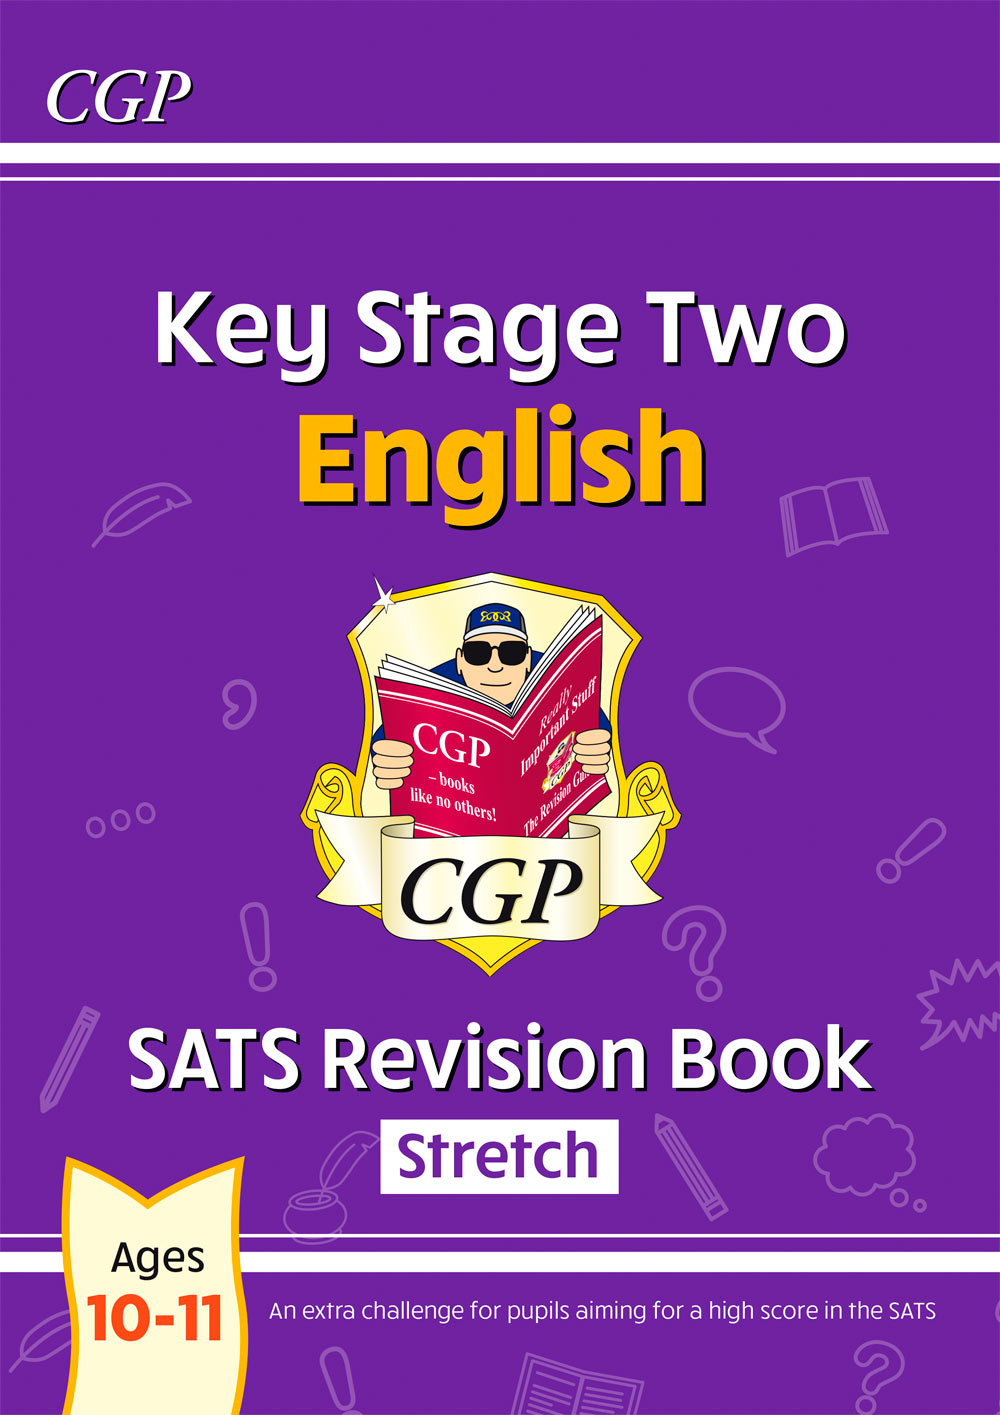 E6HR23 - New KS2 English SATS Revision Book: Stretch - Ages 10-11 (for the 2021 tests)